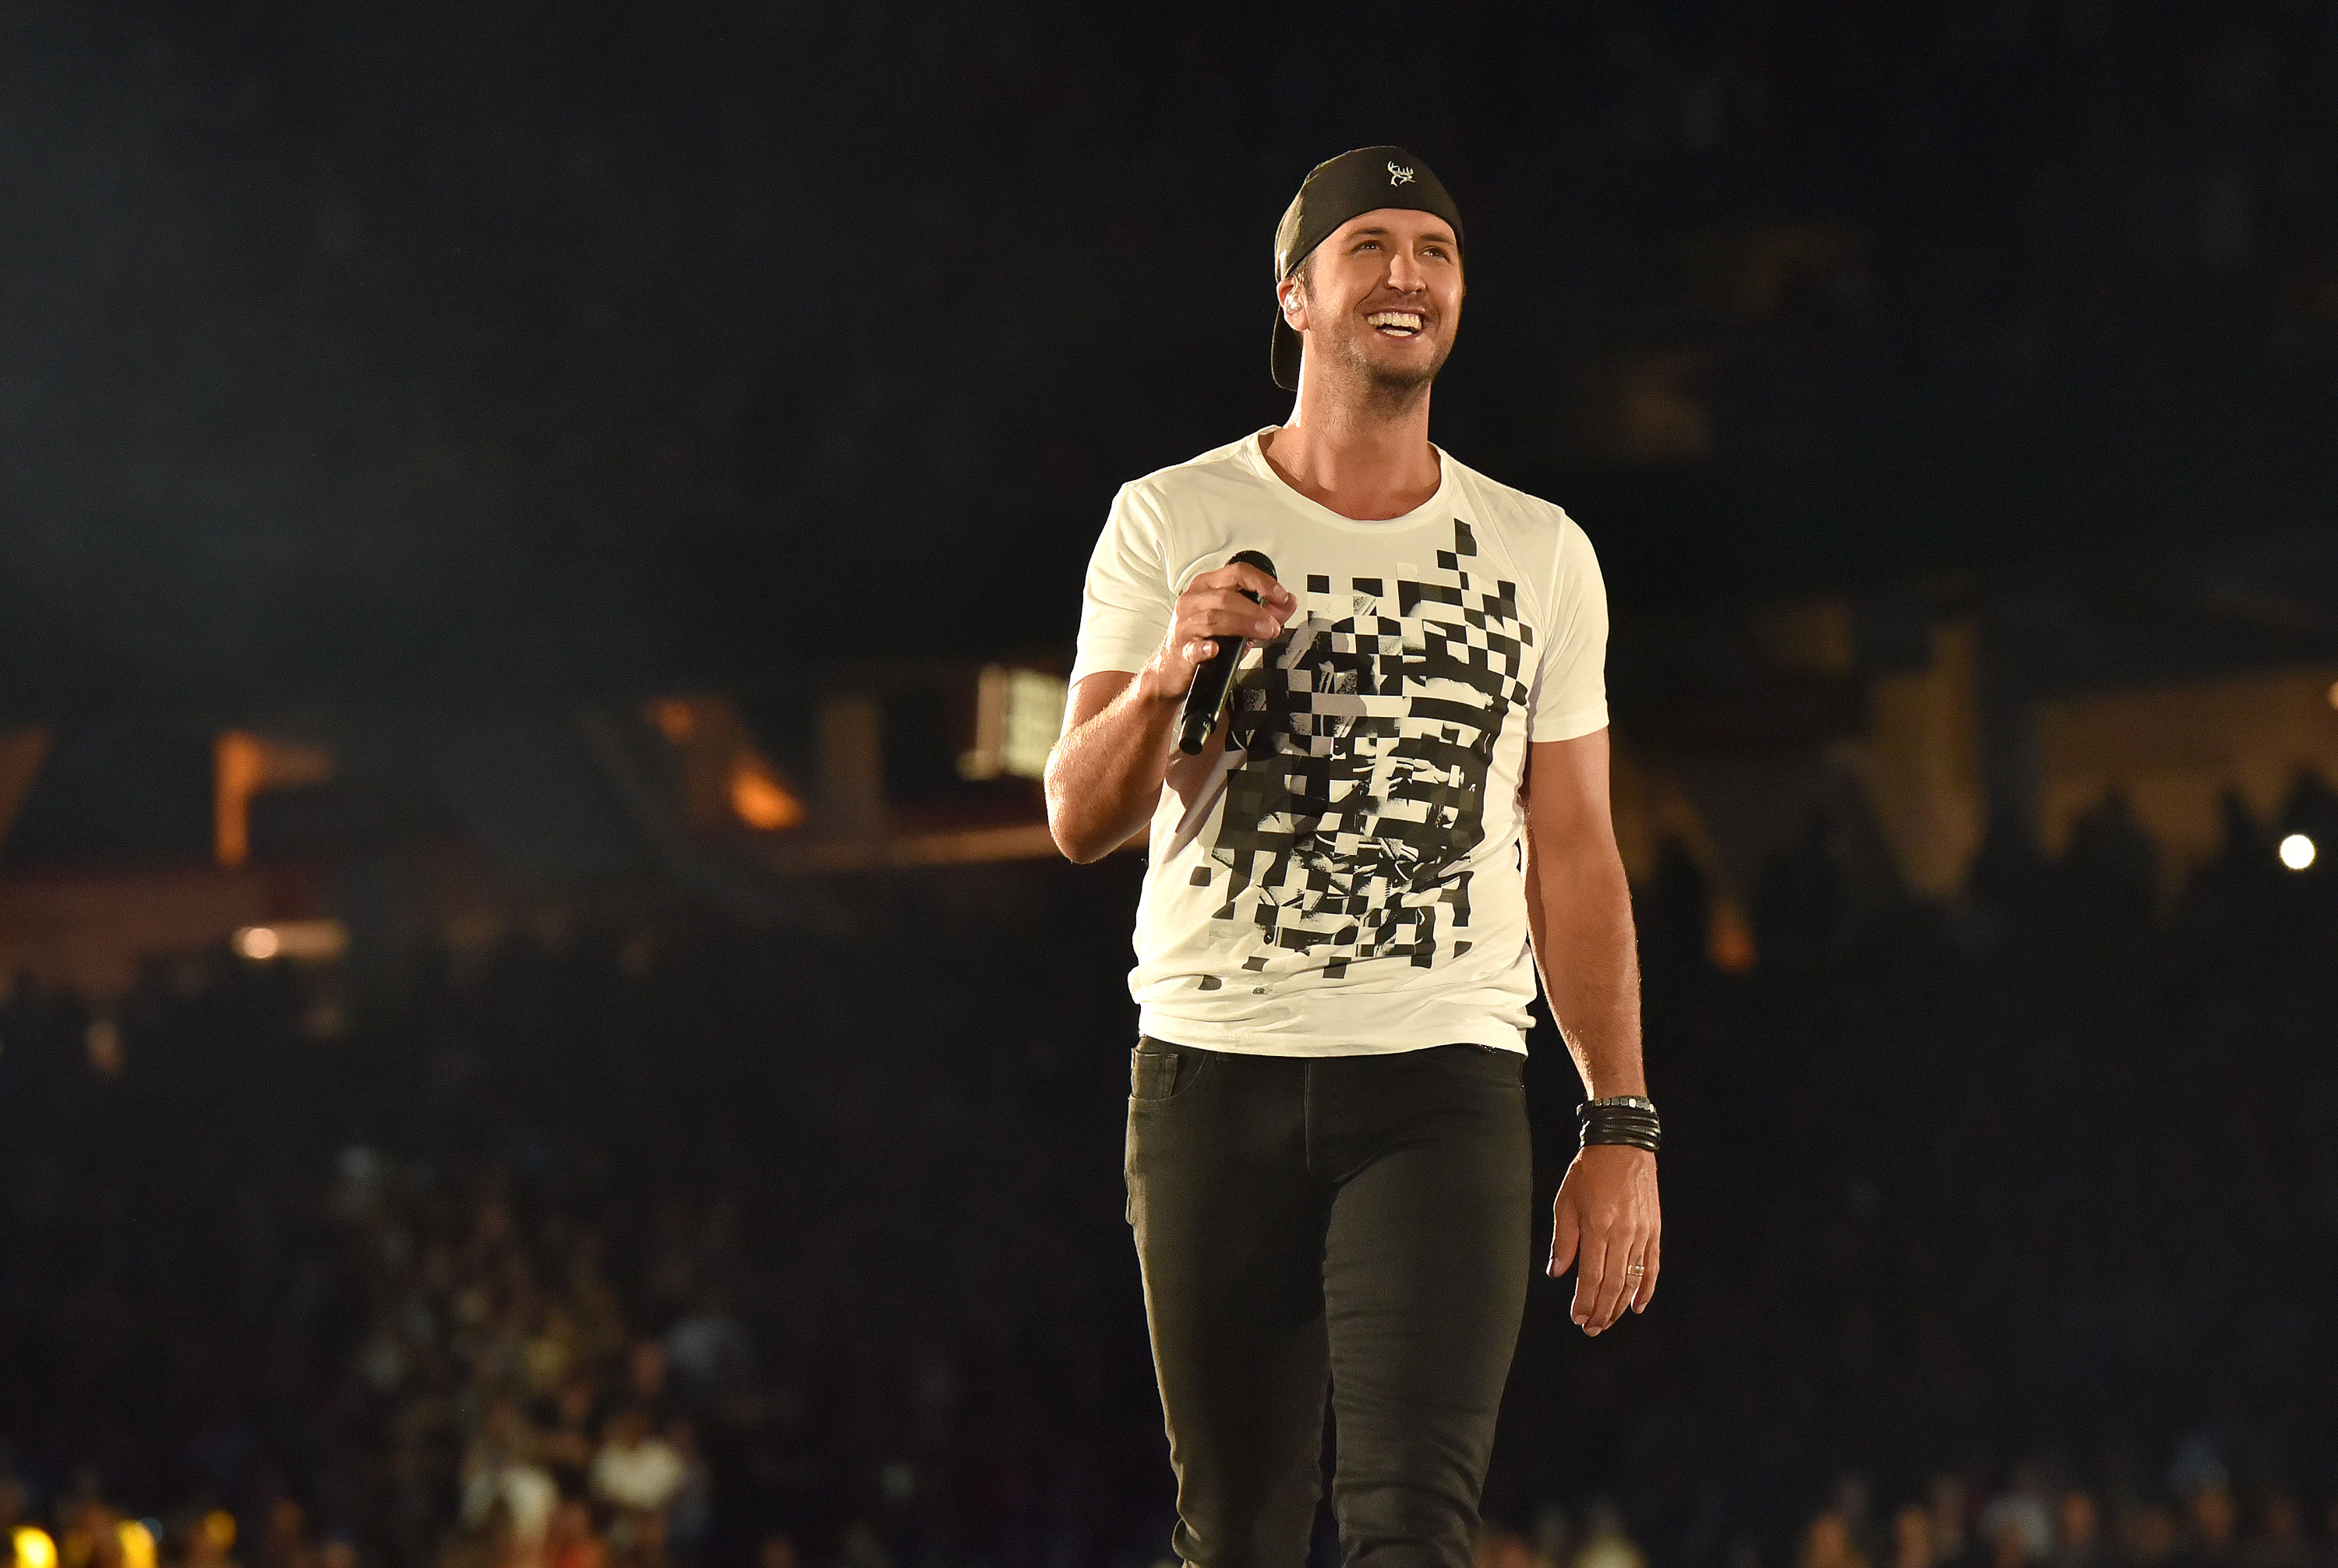 Luke Bryan on Touring Smart and Finding His Voice